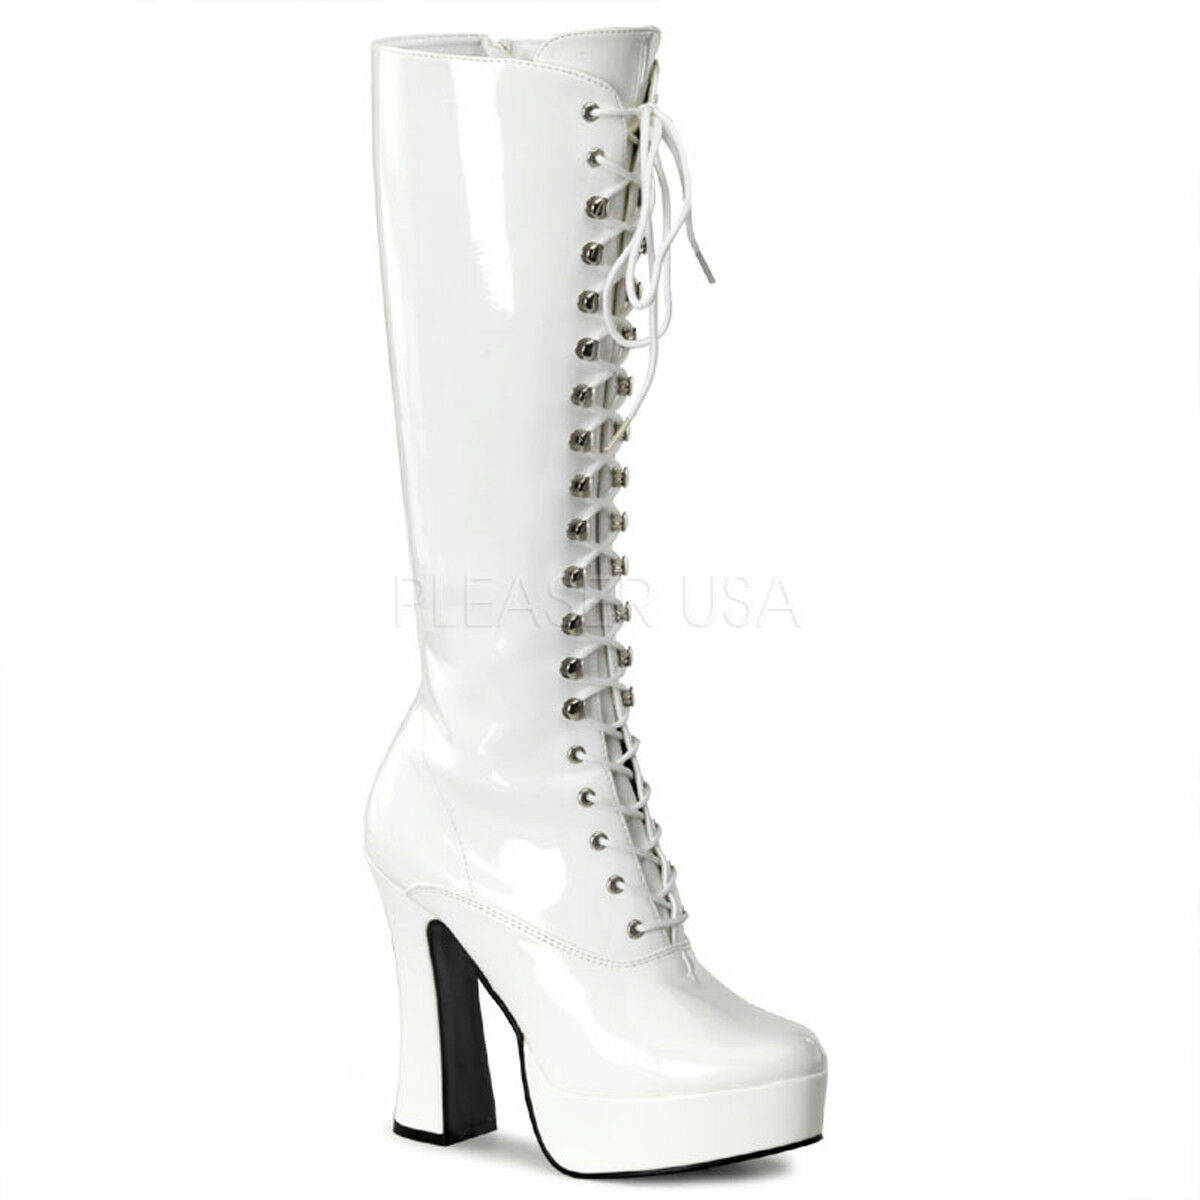 Pleaser ELECTRA-2020 Platforms Exotic Dancing White Patent Knee High Boots